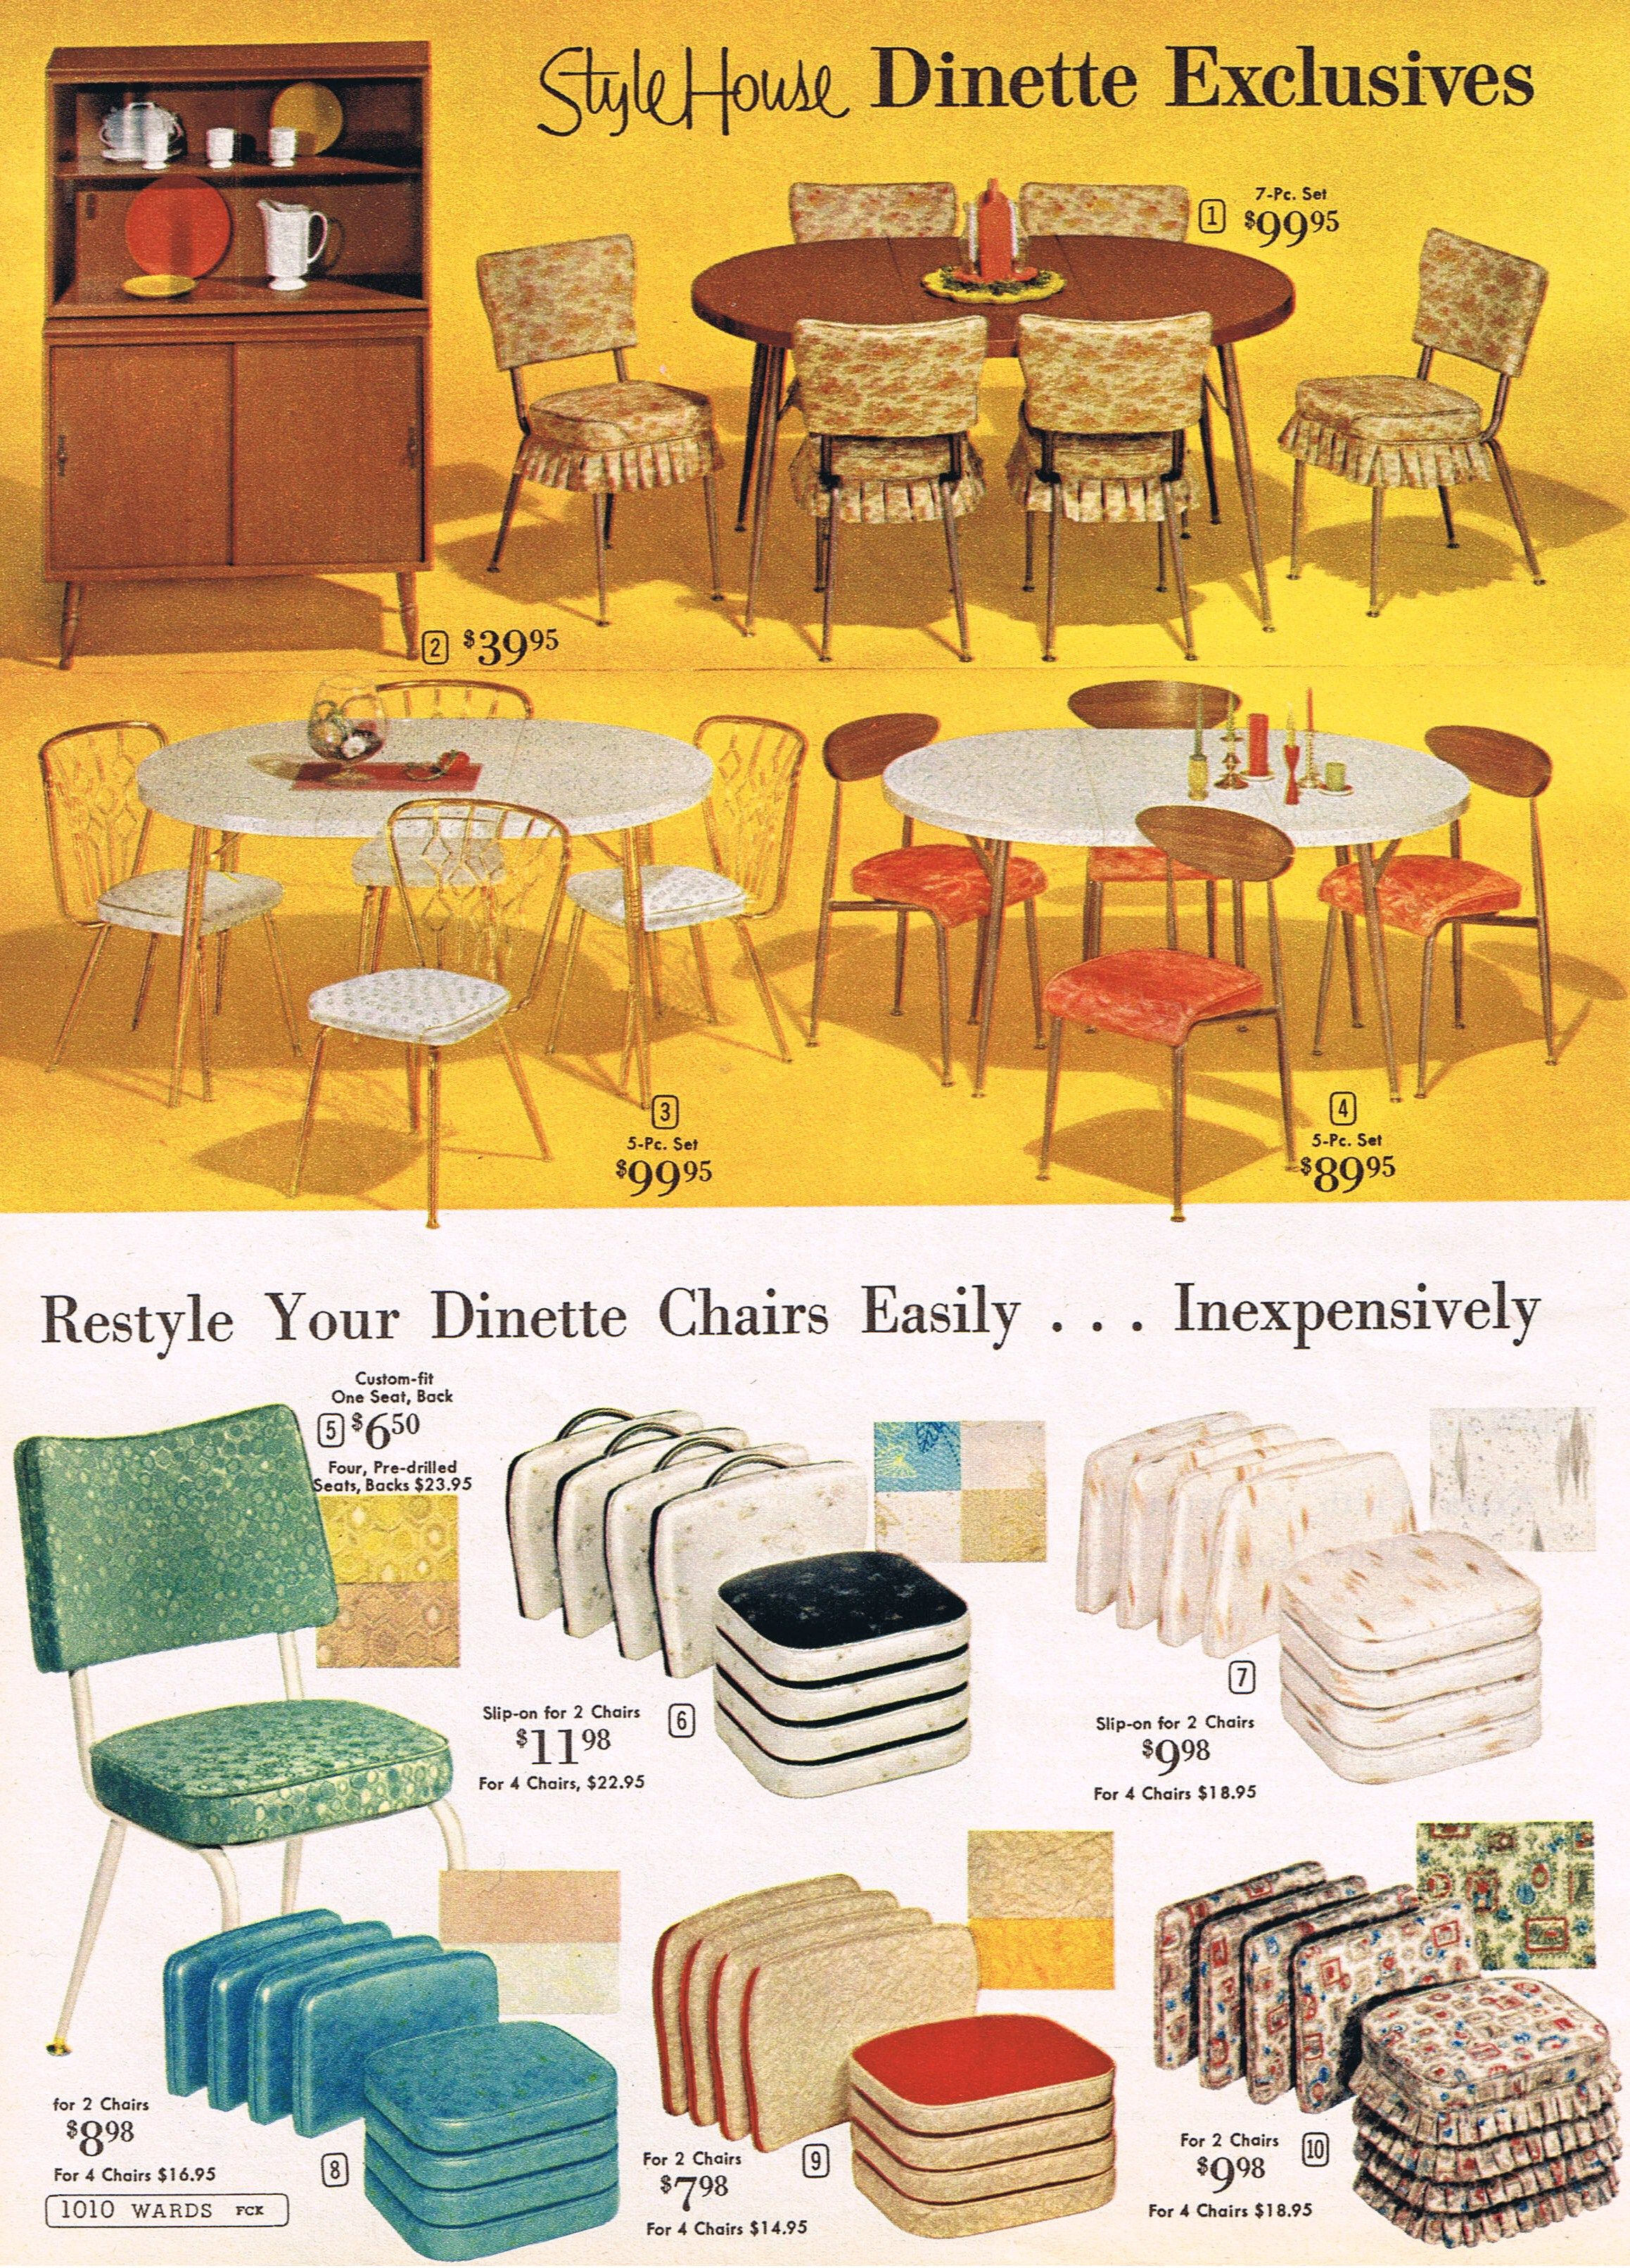 Wards\' dinette sets and chair cushions, 1964 | The Mid Century Mail ...